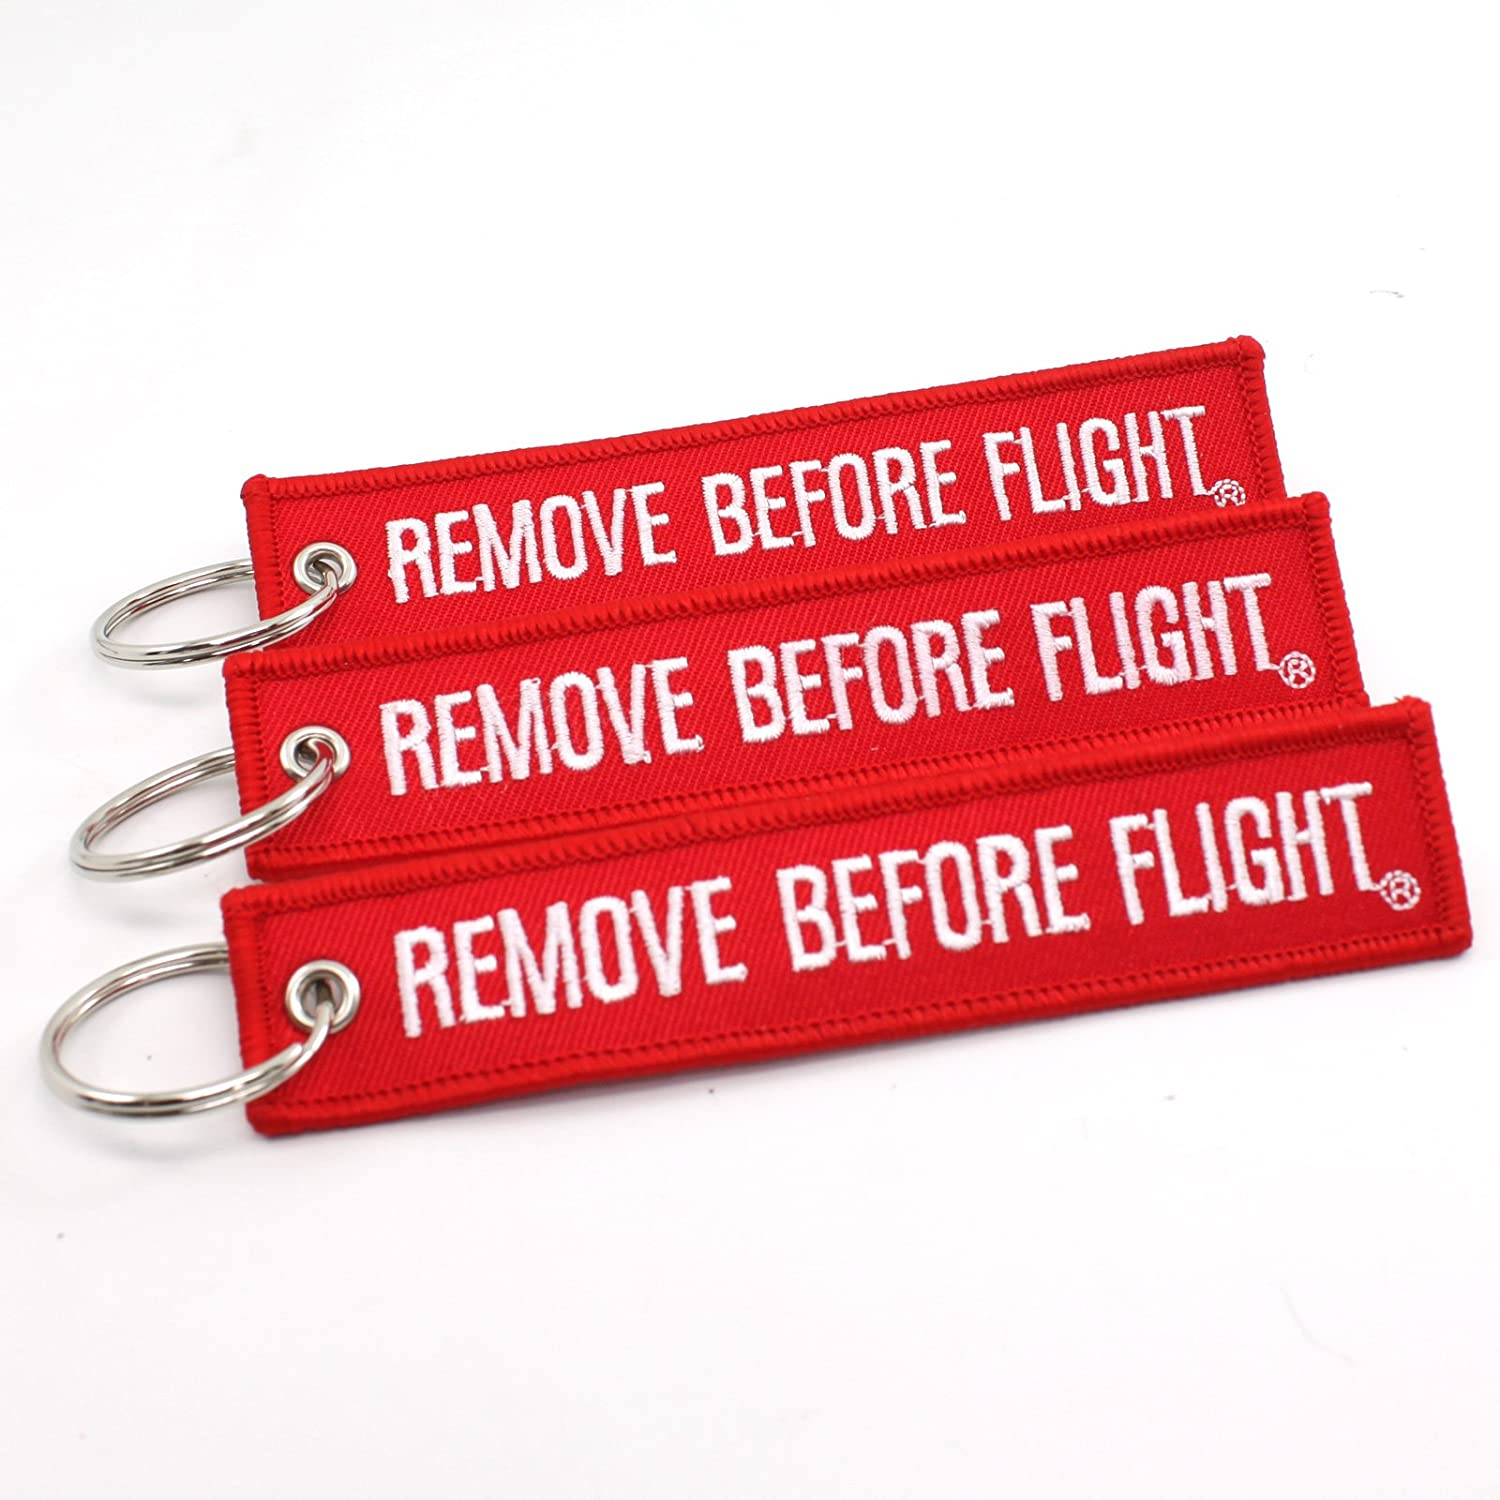 Remove Before Flight Key Chain - 3 Pack Red by Rotary13B1 at Amazon Men's  Clothing store